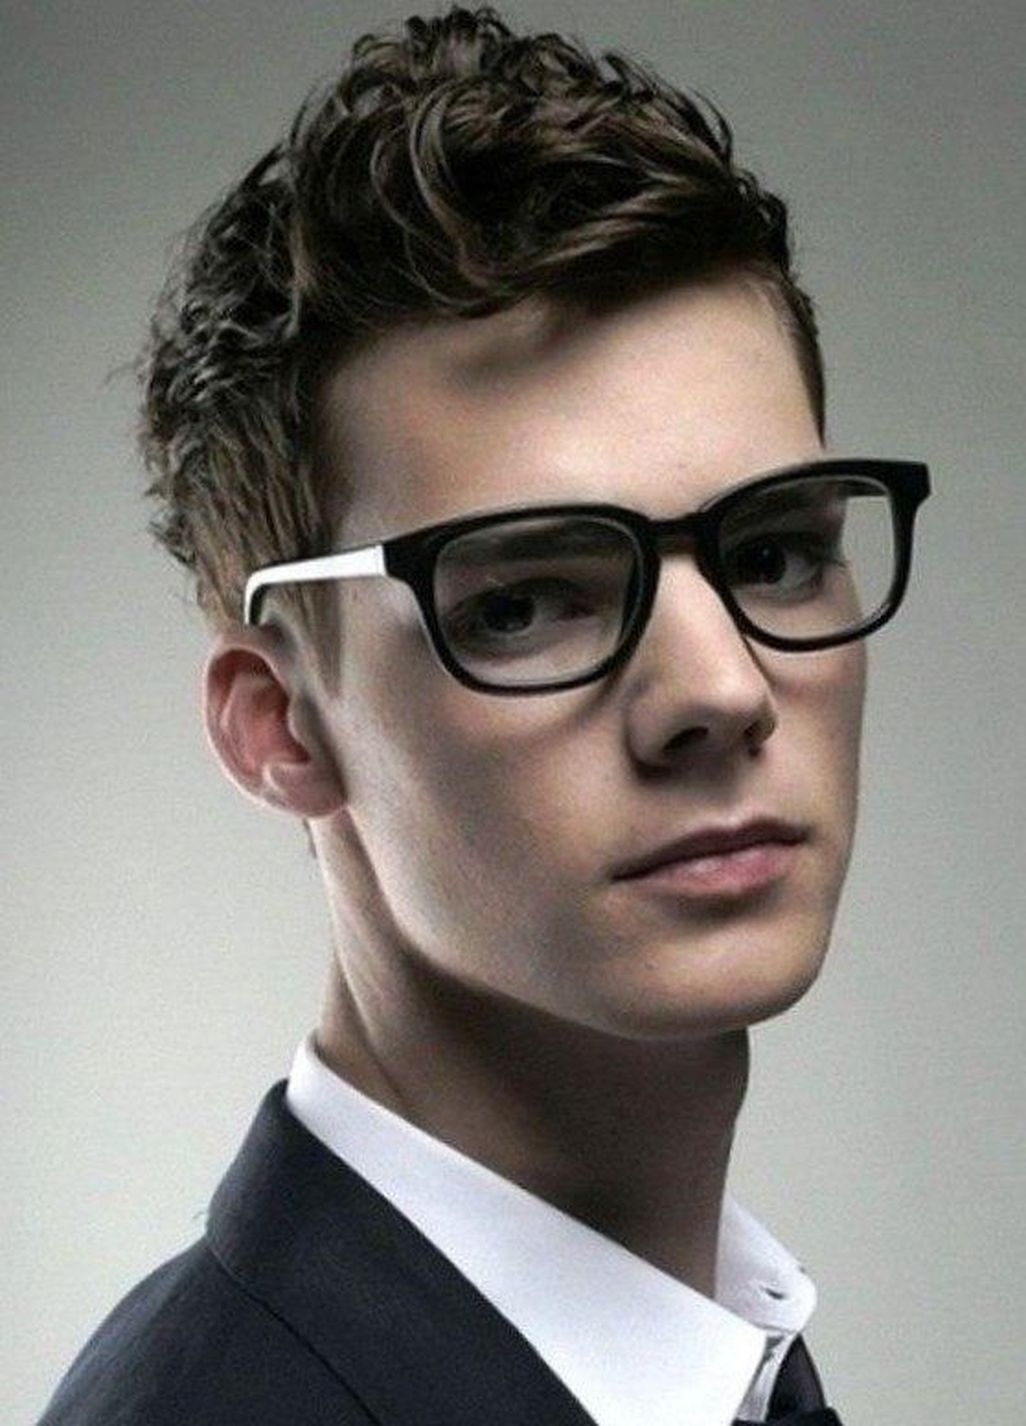 Best curly haircut for men  elegant short curly hairstyles for men  character vault